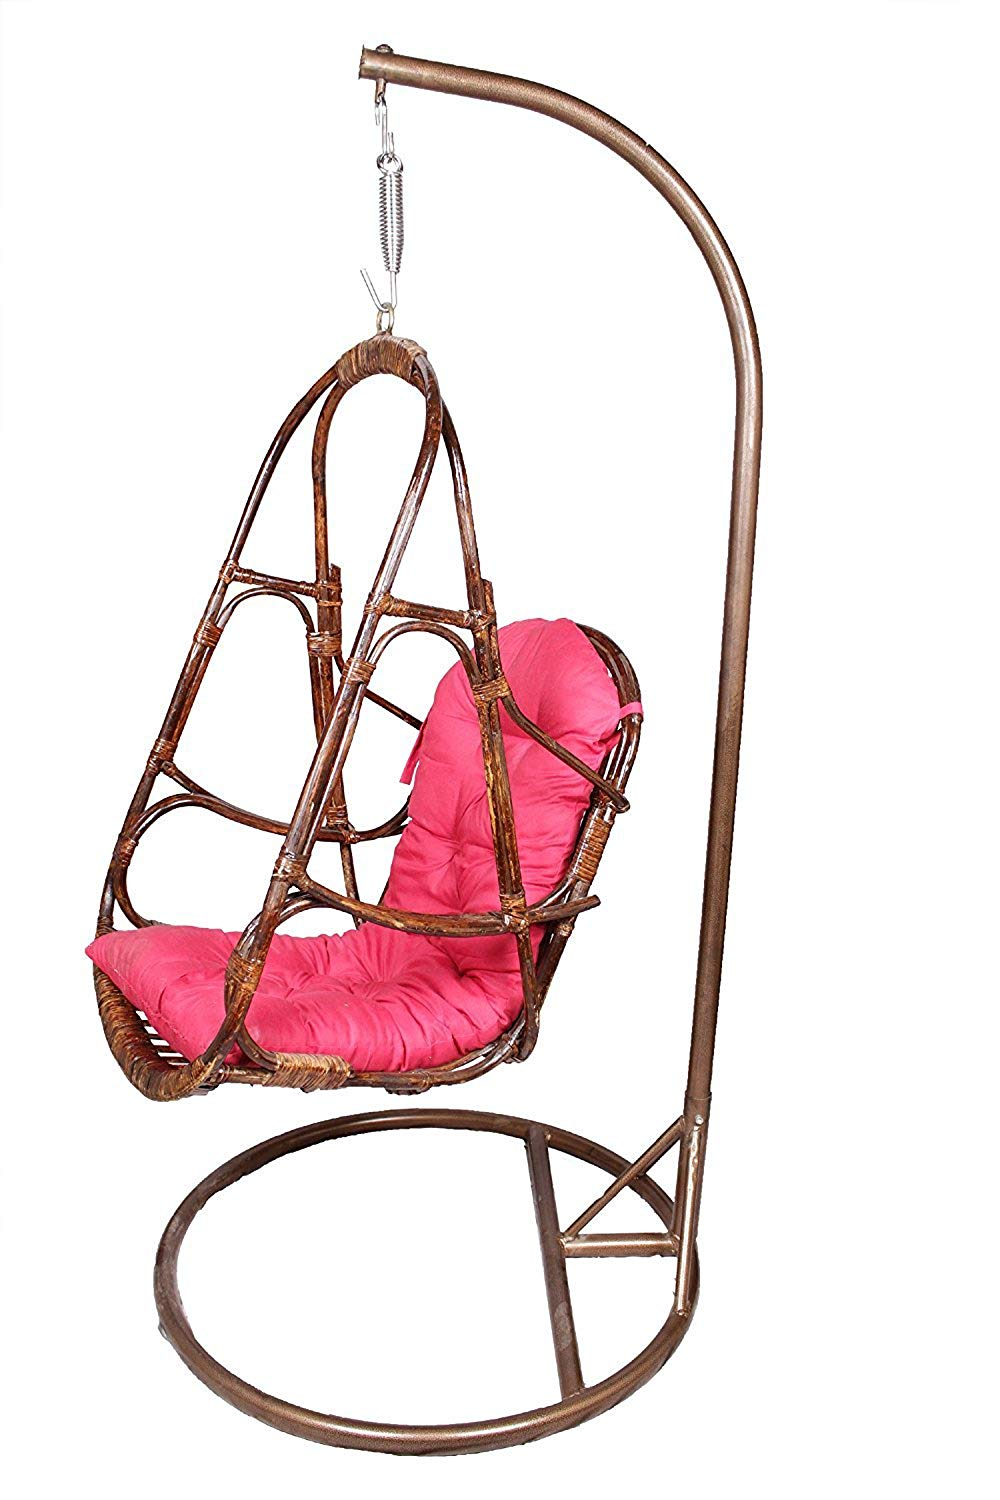 IRA Metal Stand With Cane Rattan Swing And Cushion - IRA Furniture